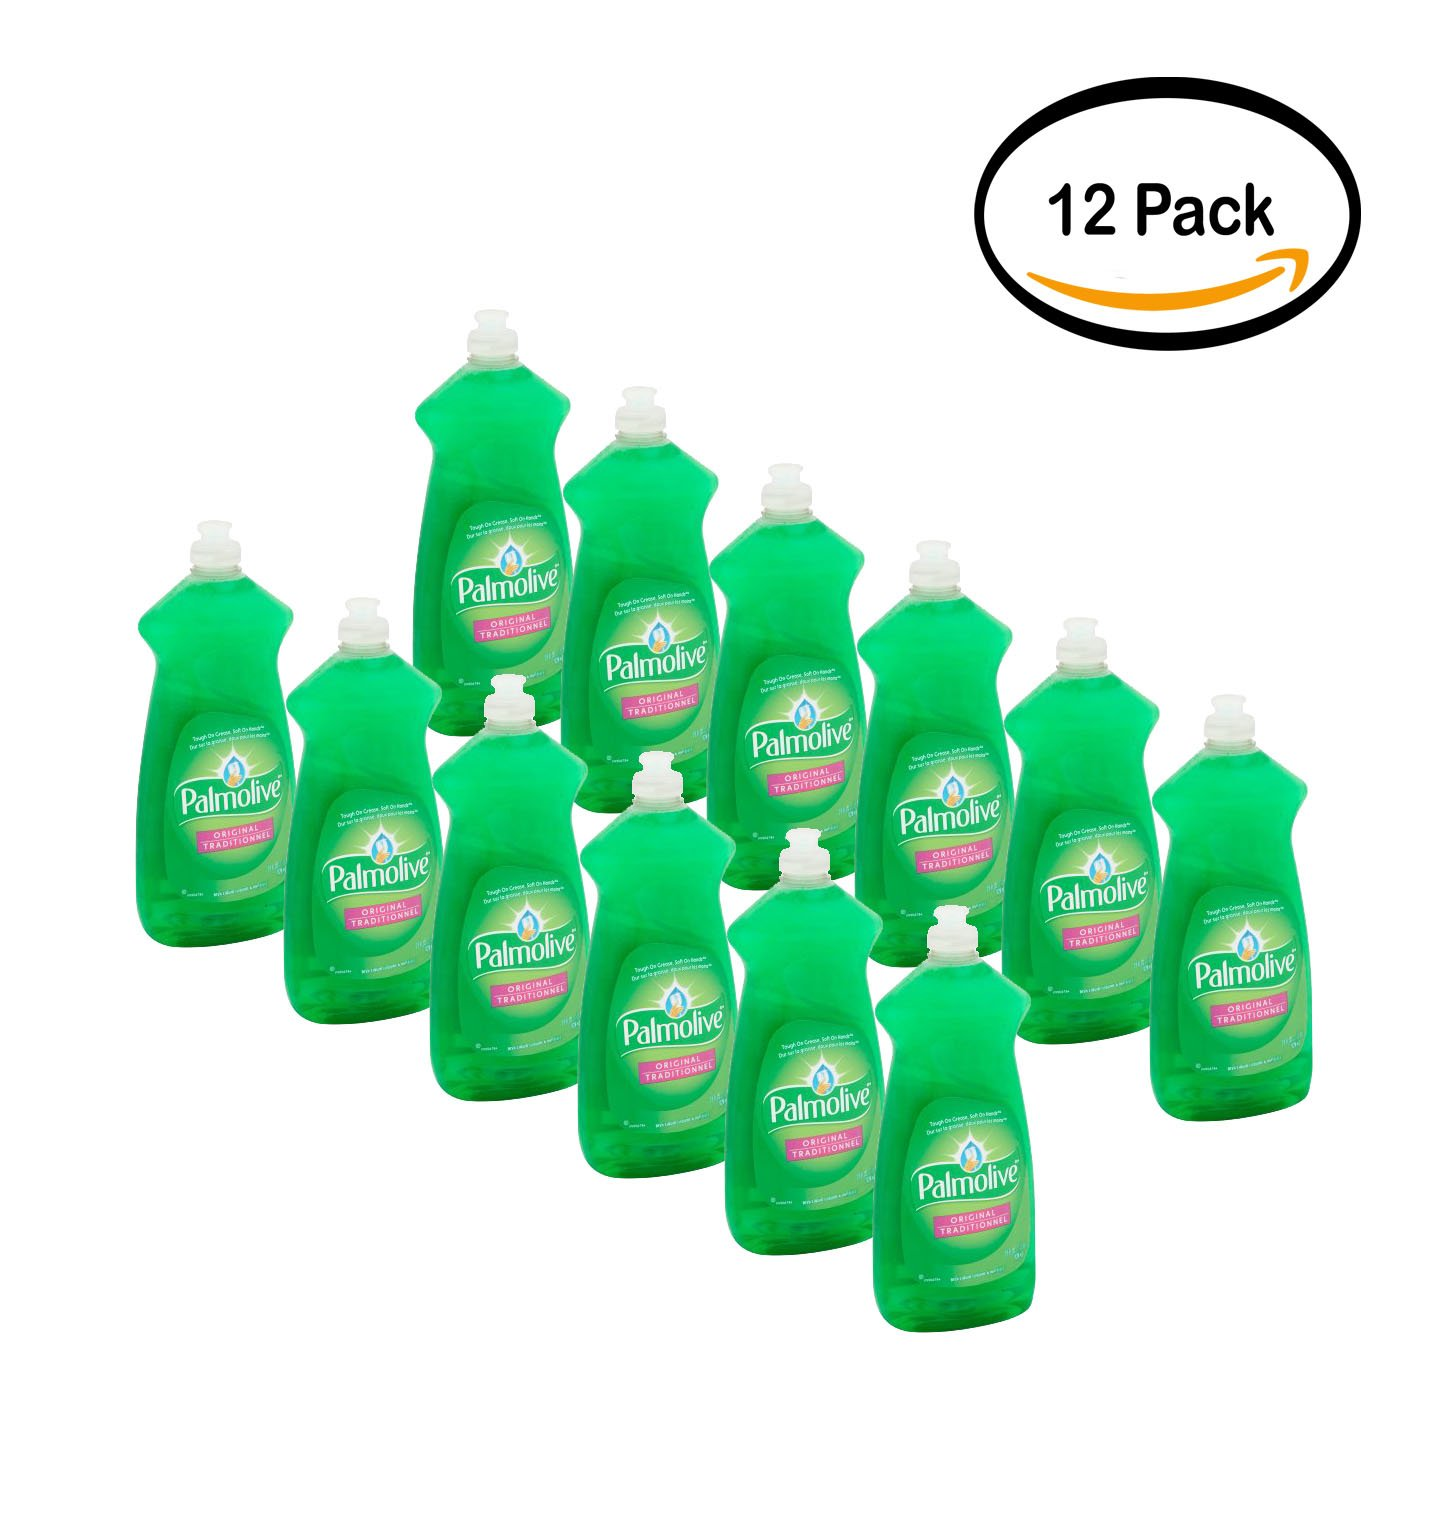 Palmolive AC1400, 12 PACK